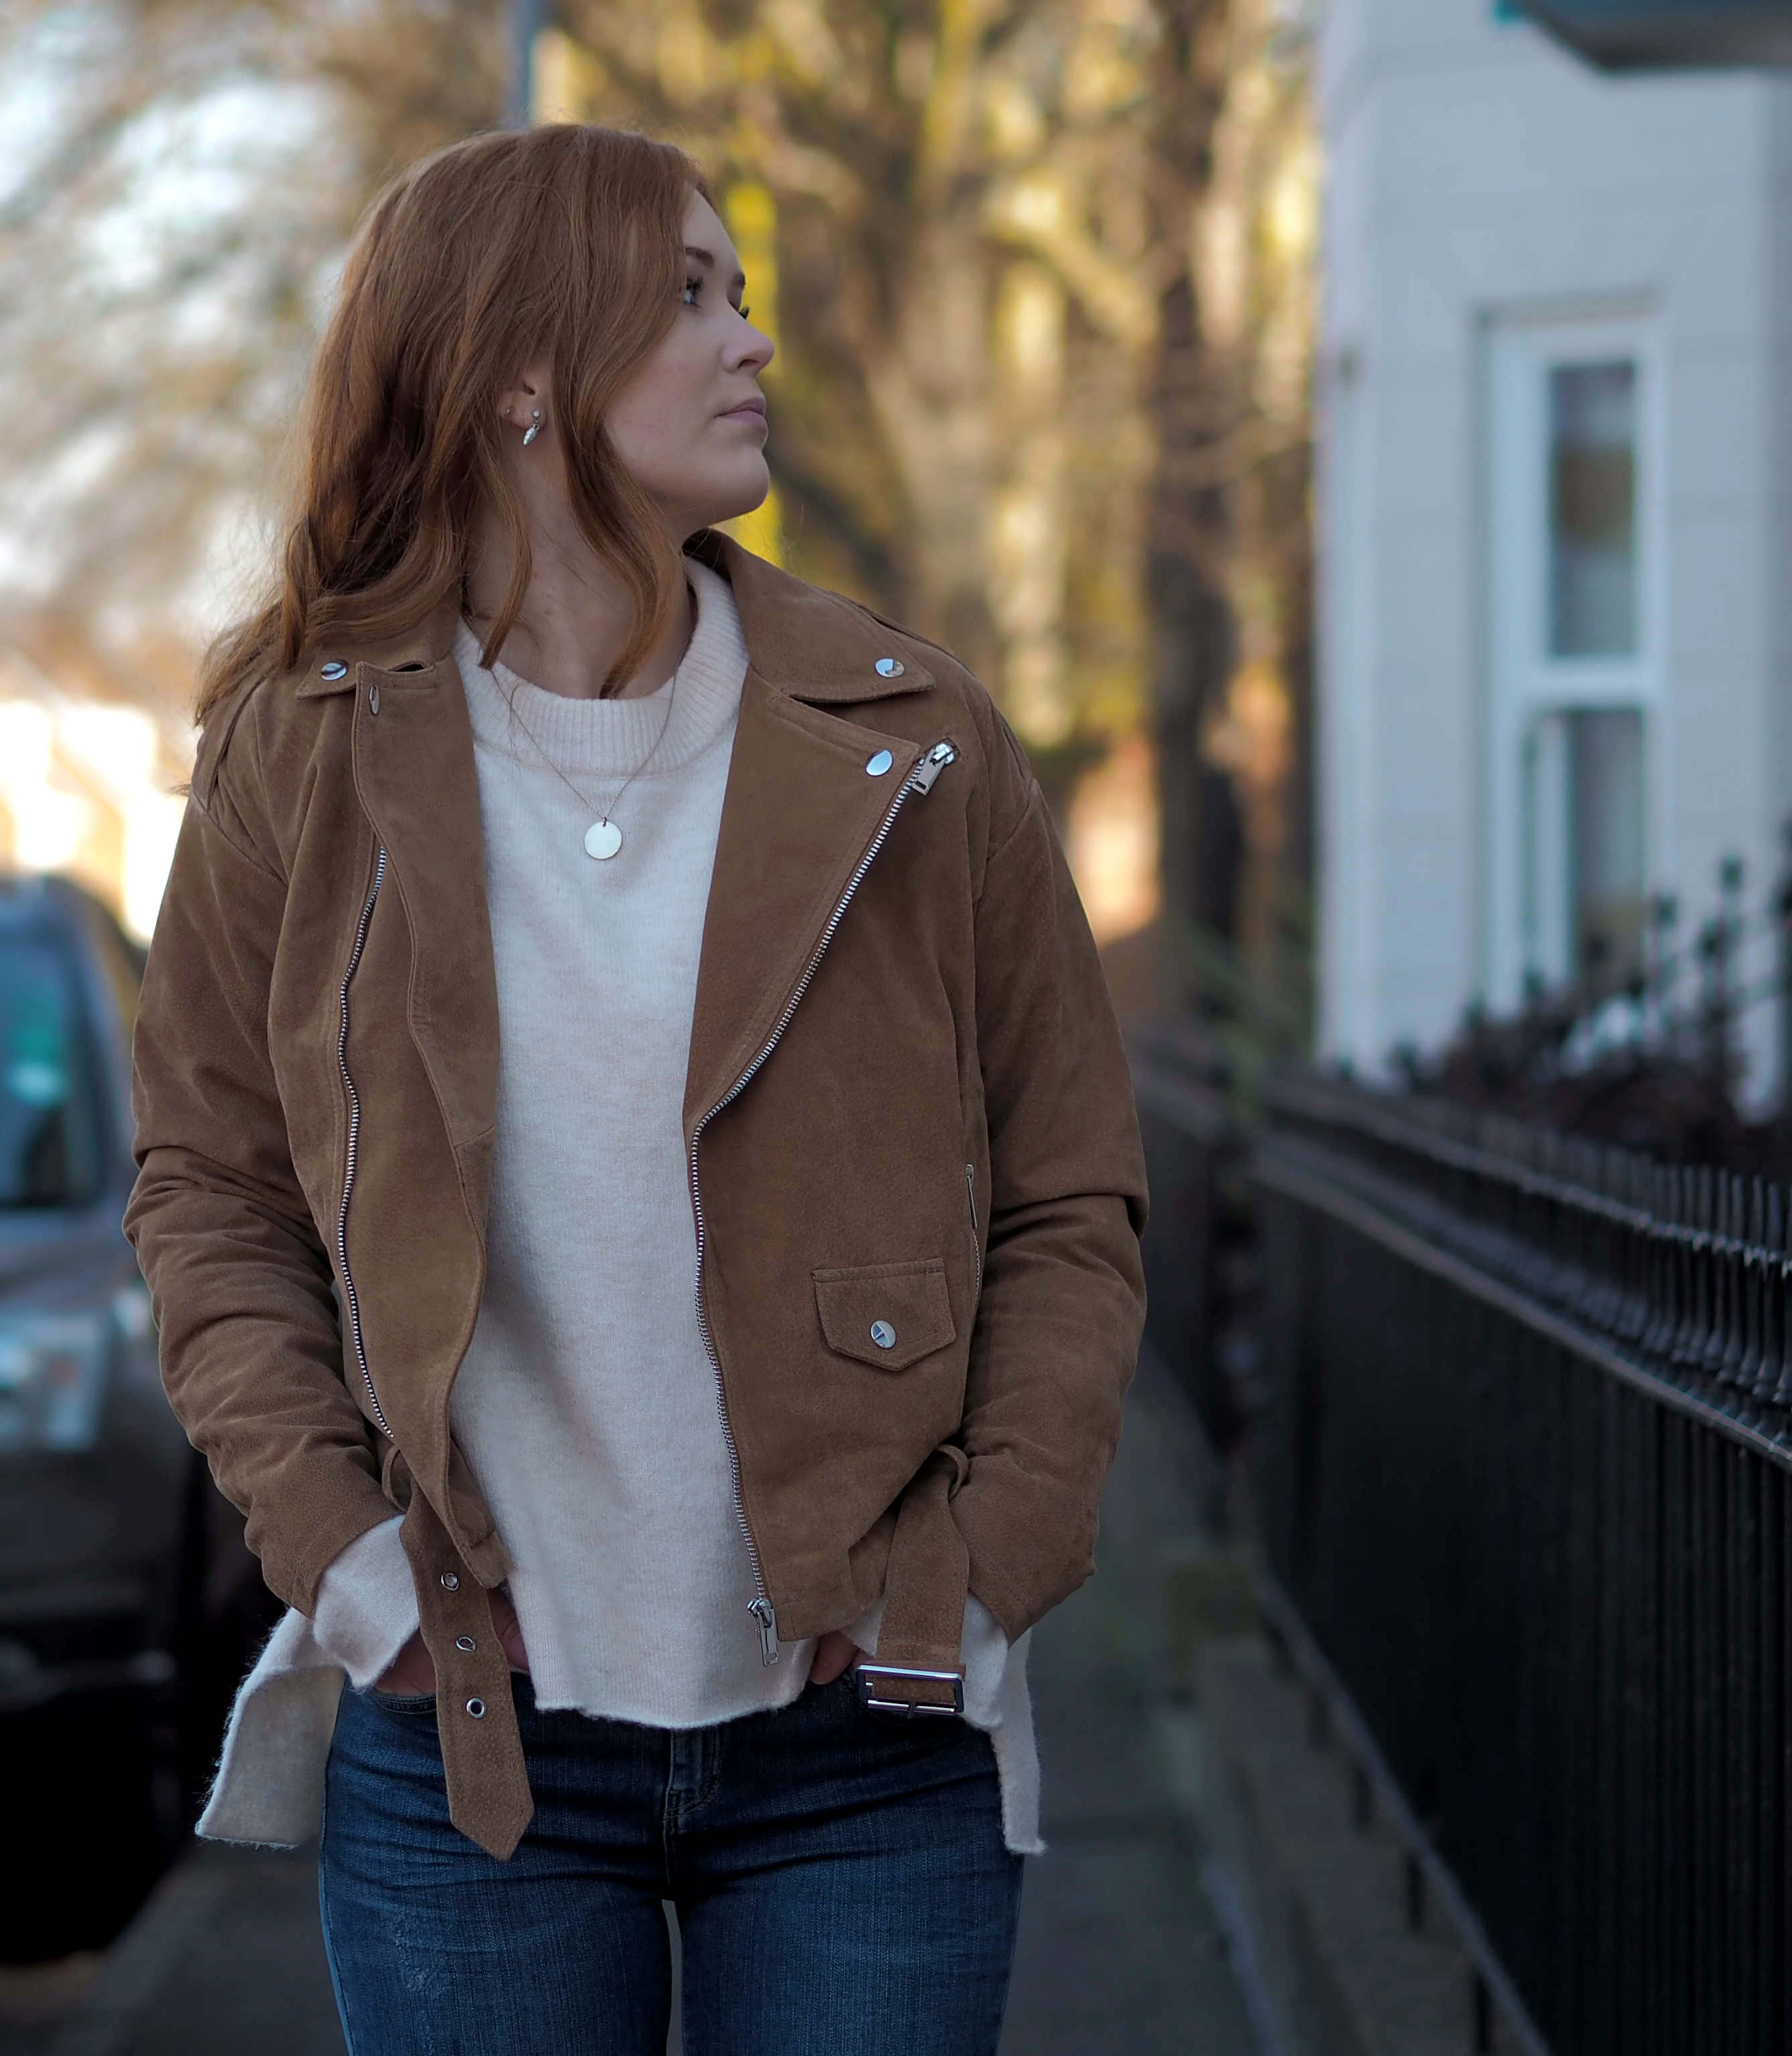 tan suede jacket ASOS Zara tie sleeve jumper River Island blue jeans stradivarius cream boots outfit inspiration